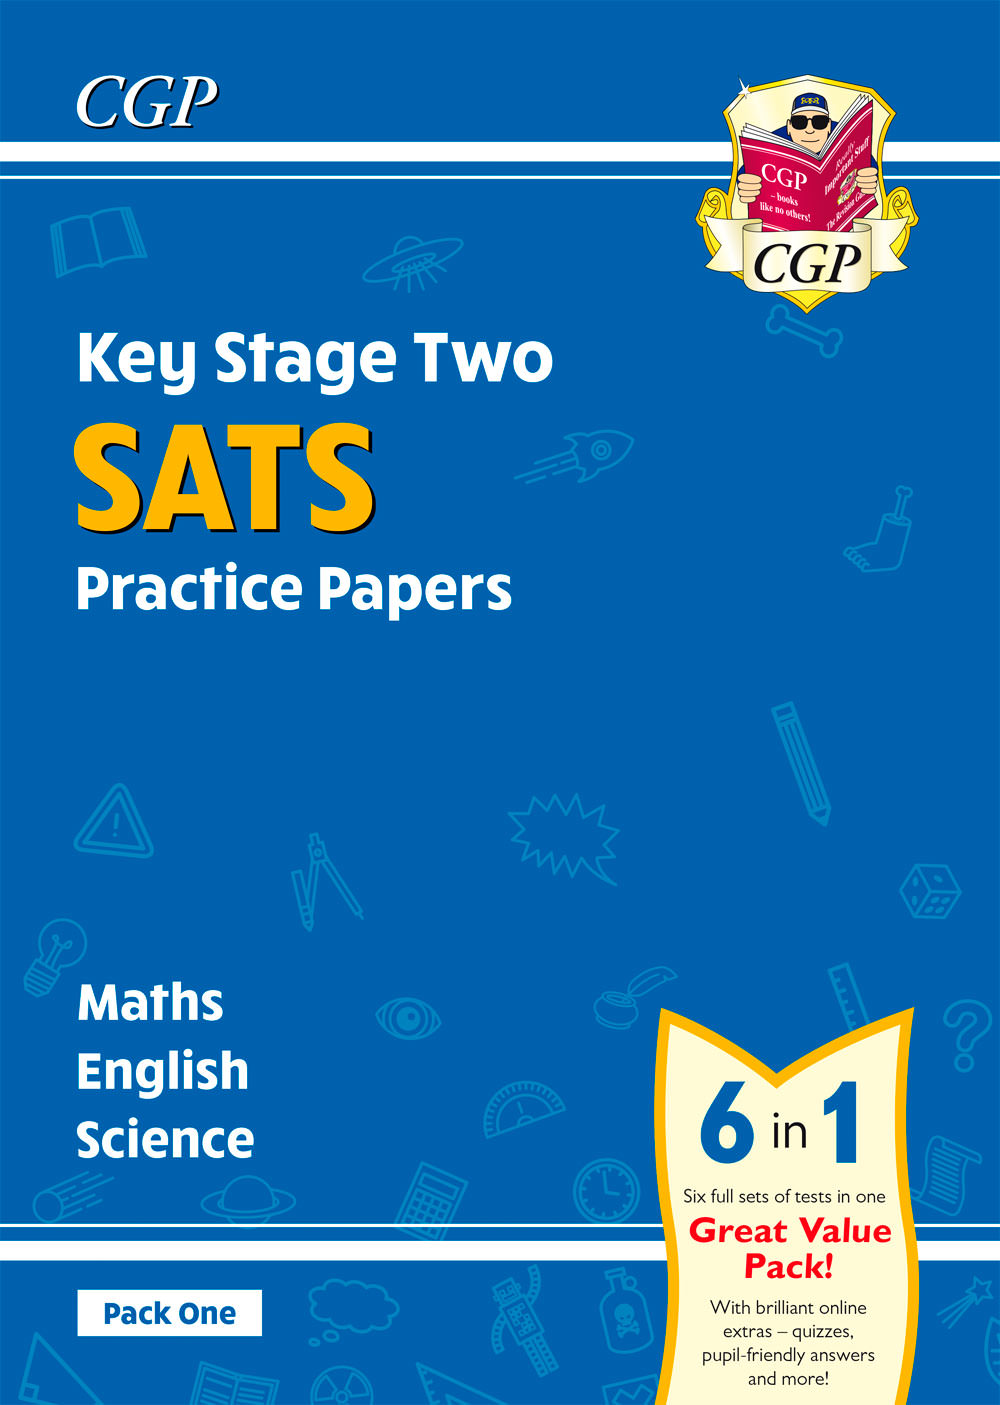 SMEB27 - New KS2 Complete SATS Practice Papers Pack 1: Science, Maths & English